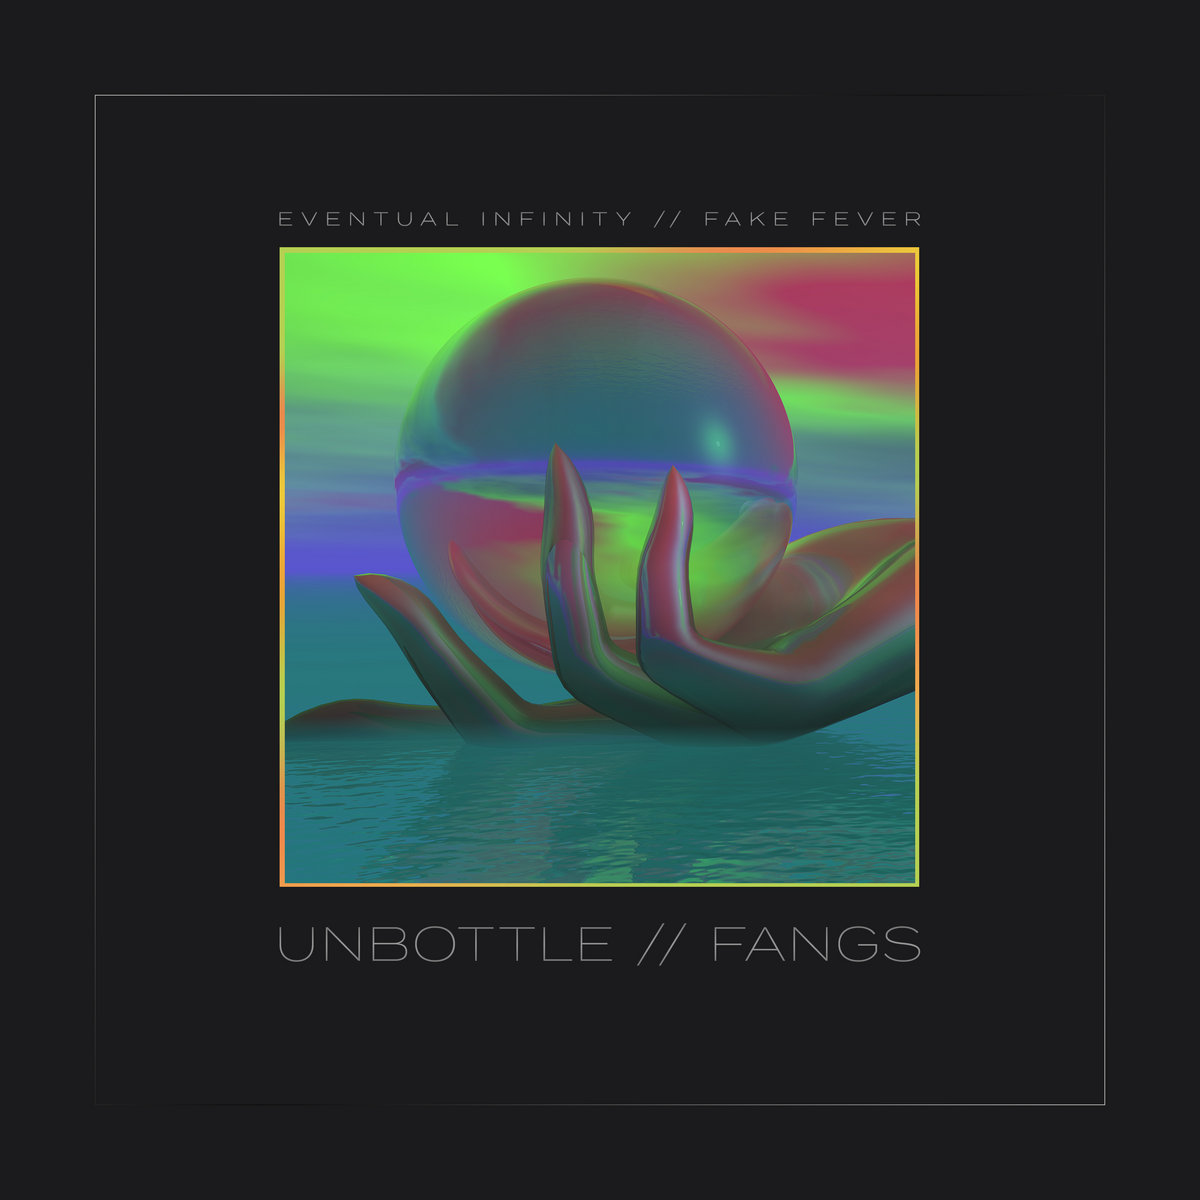 Unbottle / Fangs 1